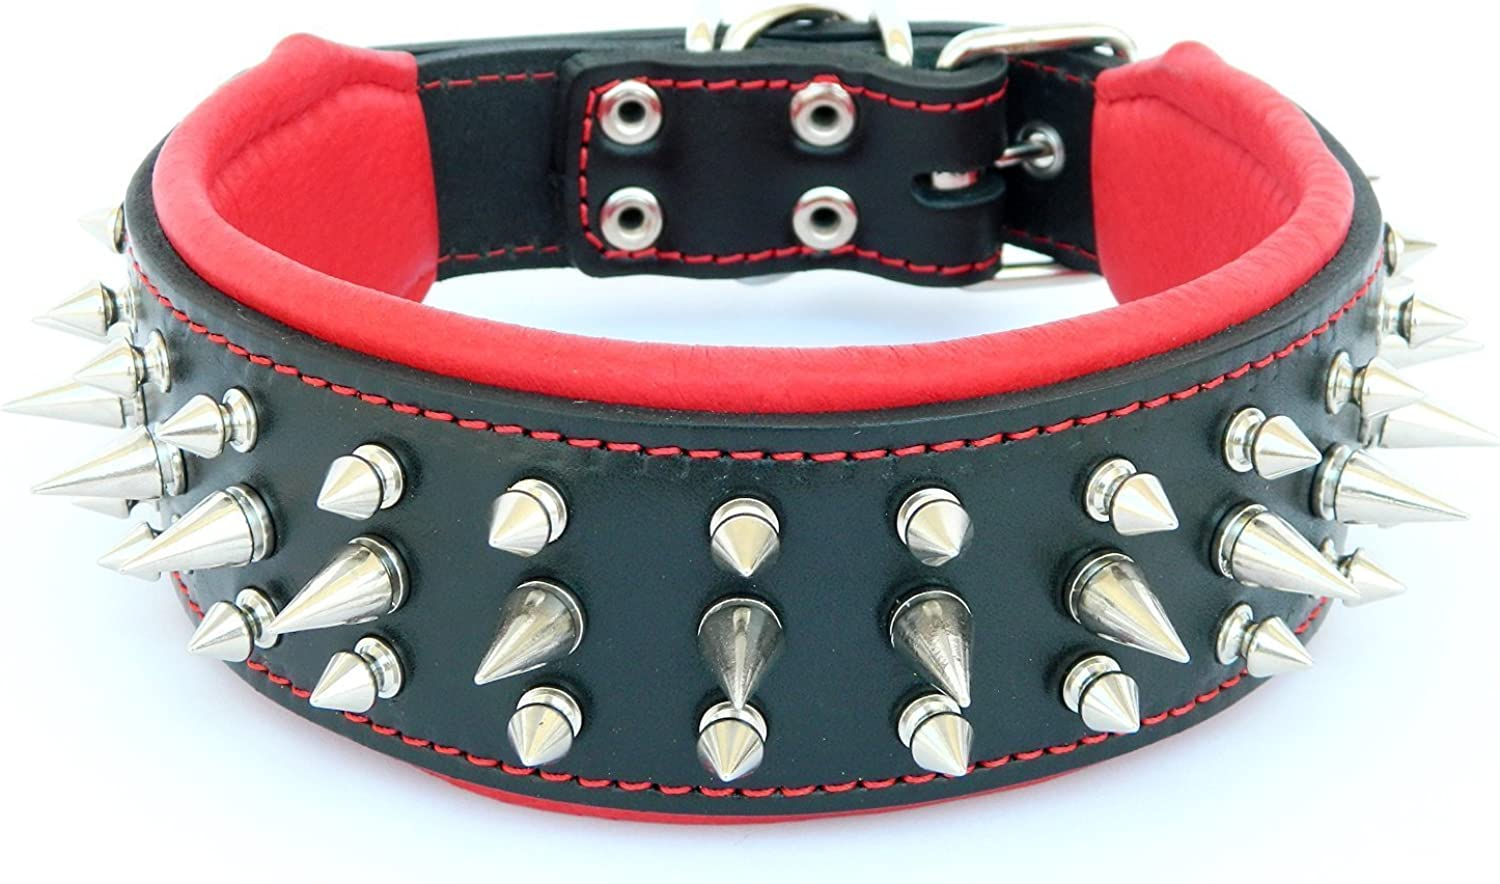 Bestia  Danger  genuine leather dog collar with screw spikes and soft leather cushion. 2.5 inch Wide. Durable. Longlasting. Padded. Pitbull. Bulldog. Bully. APBT. redtweiler. Cane corso. Handmade in Europe